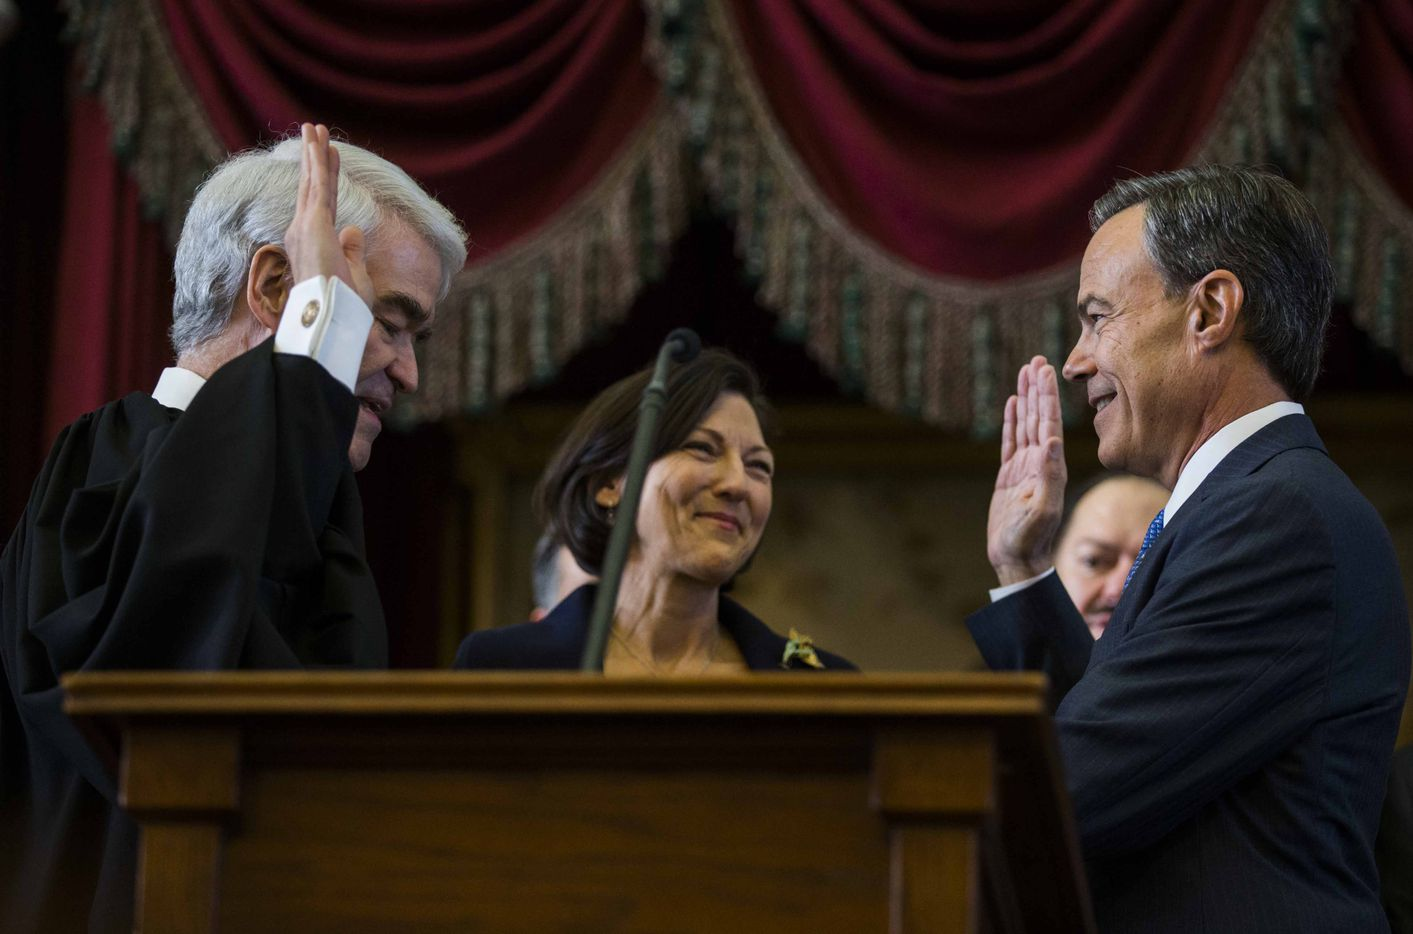 State Rep. Joe Straus is sworn in as Speaker of the House by Texas Chief Justice Nathan Hecht during the first day of the 85th Texas Legislative Session on Tuesday at the State Capitol in Austin. Straus' wife, Julie Brink, is at center.